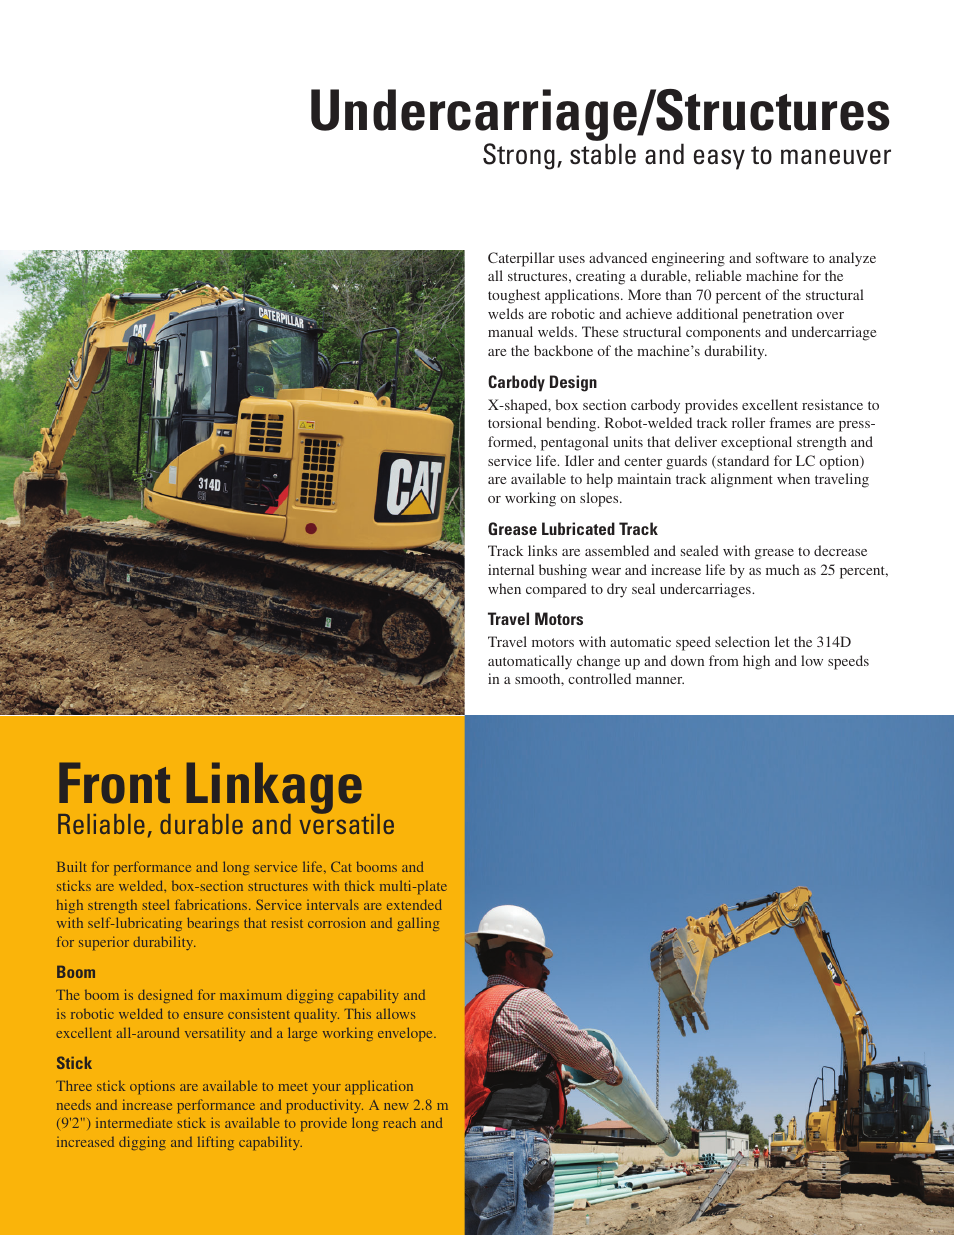 Undercarriage/structures, Front linkage, Strong, stable and